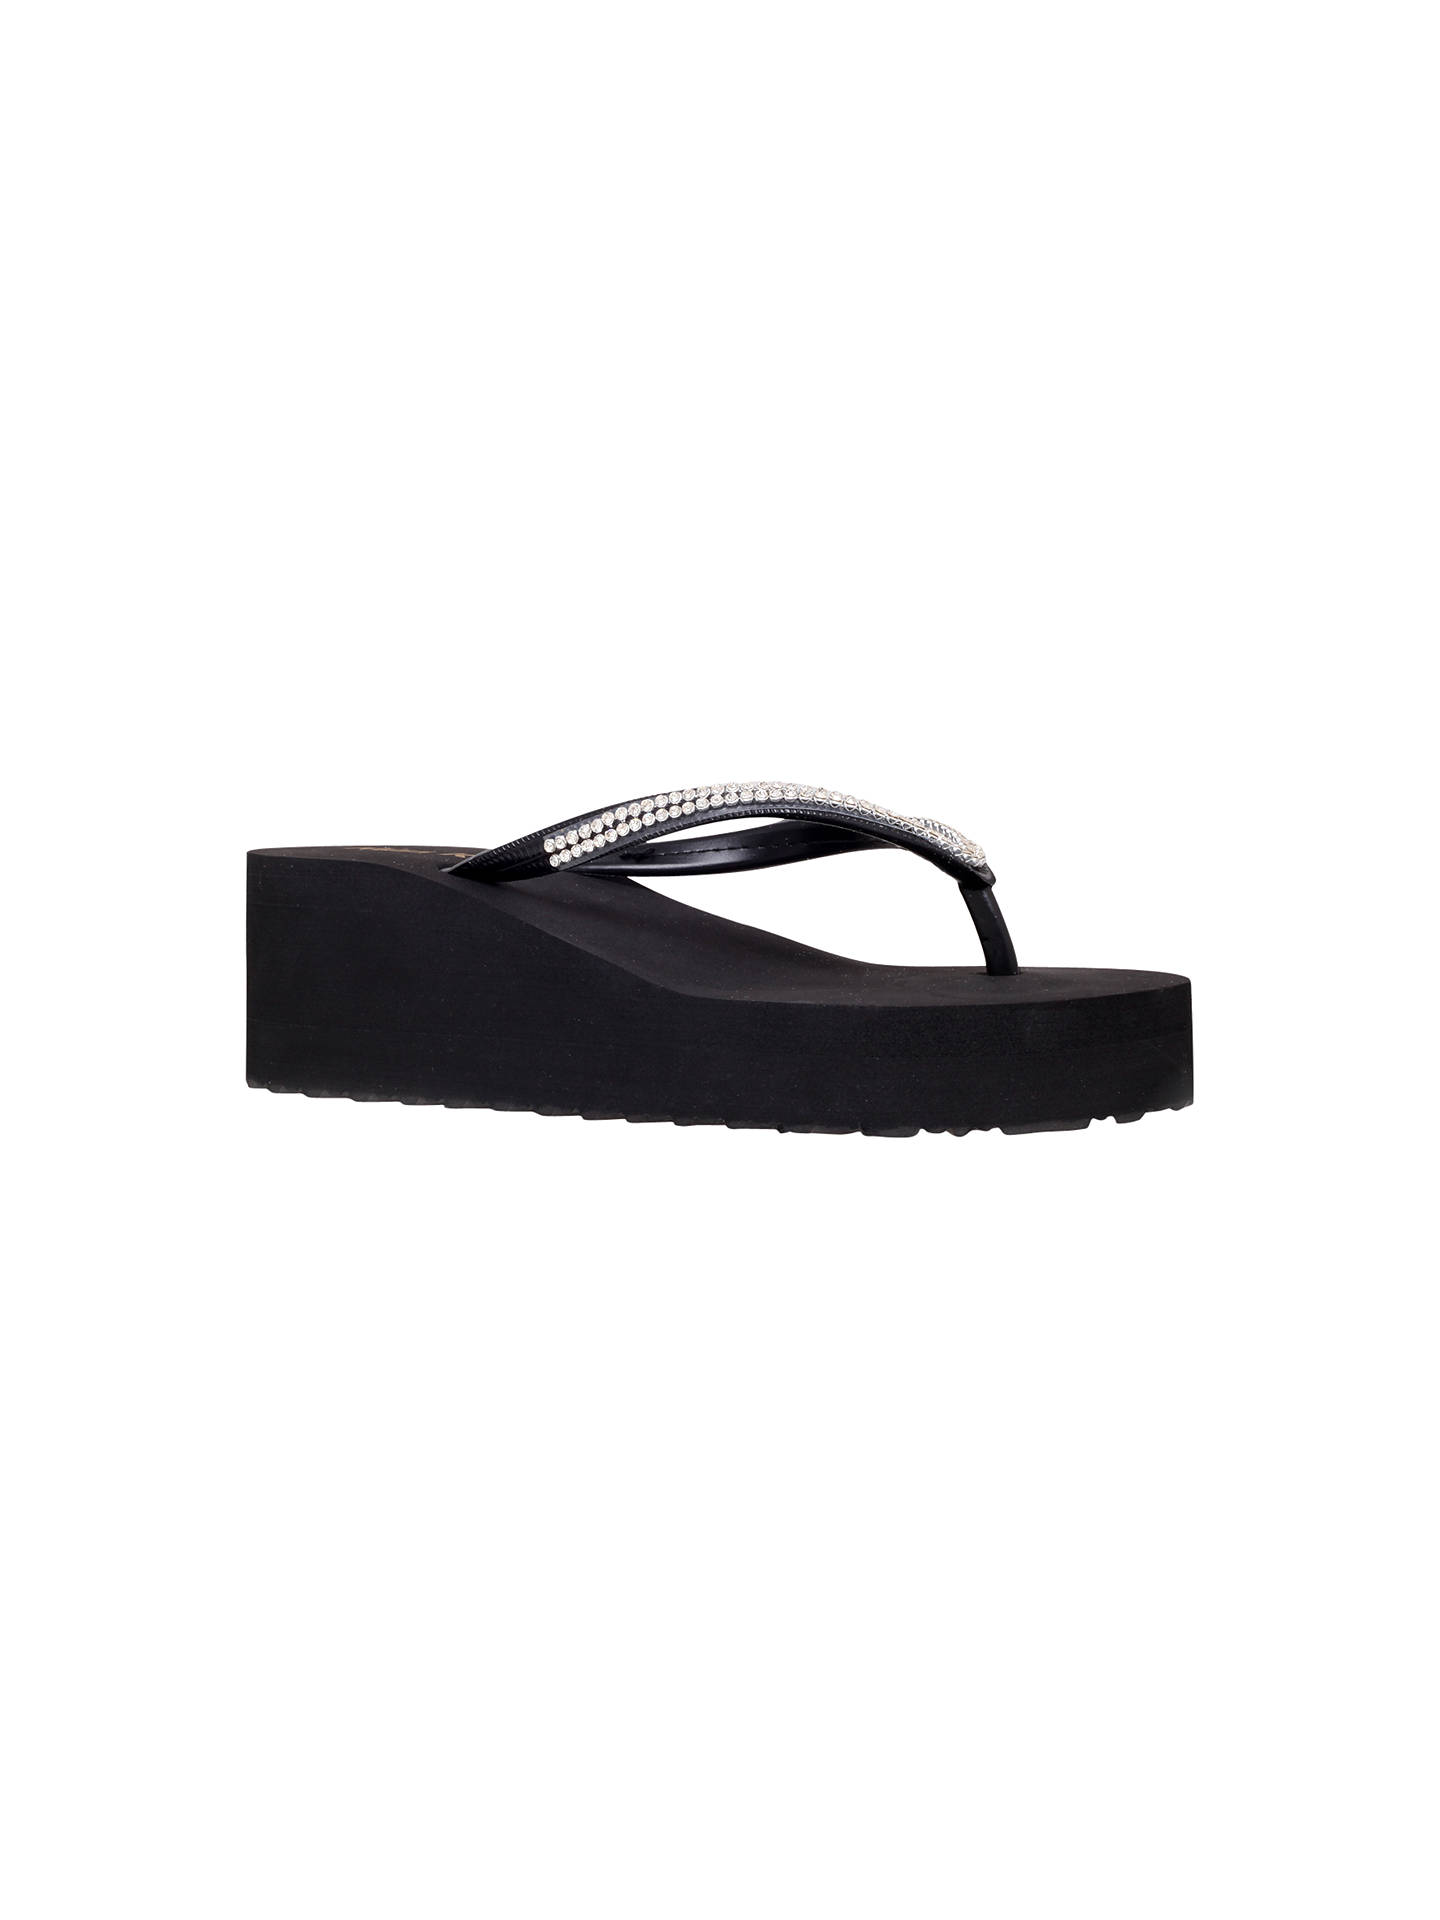 bdfecf1c48f844 Miss KG Darcy Flip-Flop Sandals at John Lewis   Partners